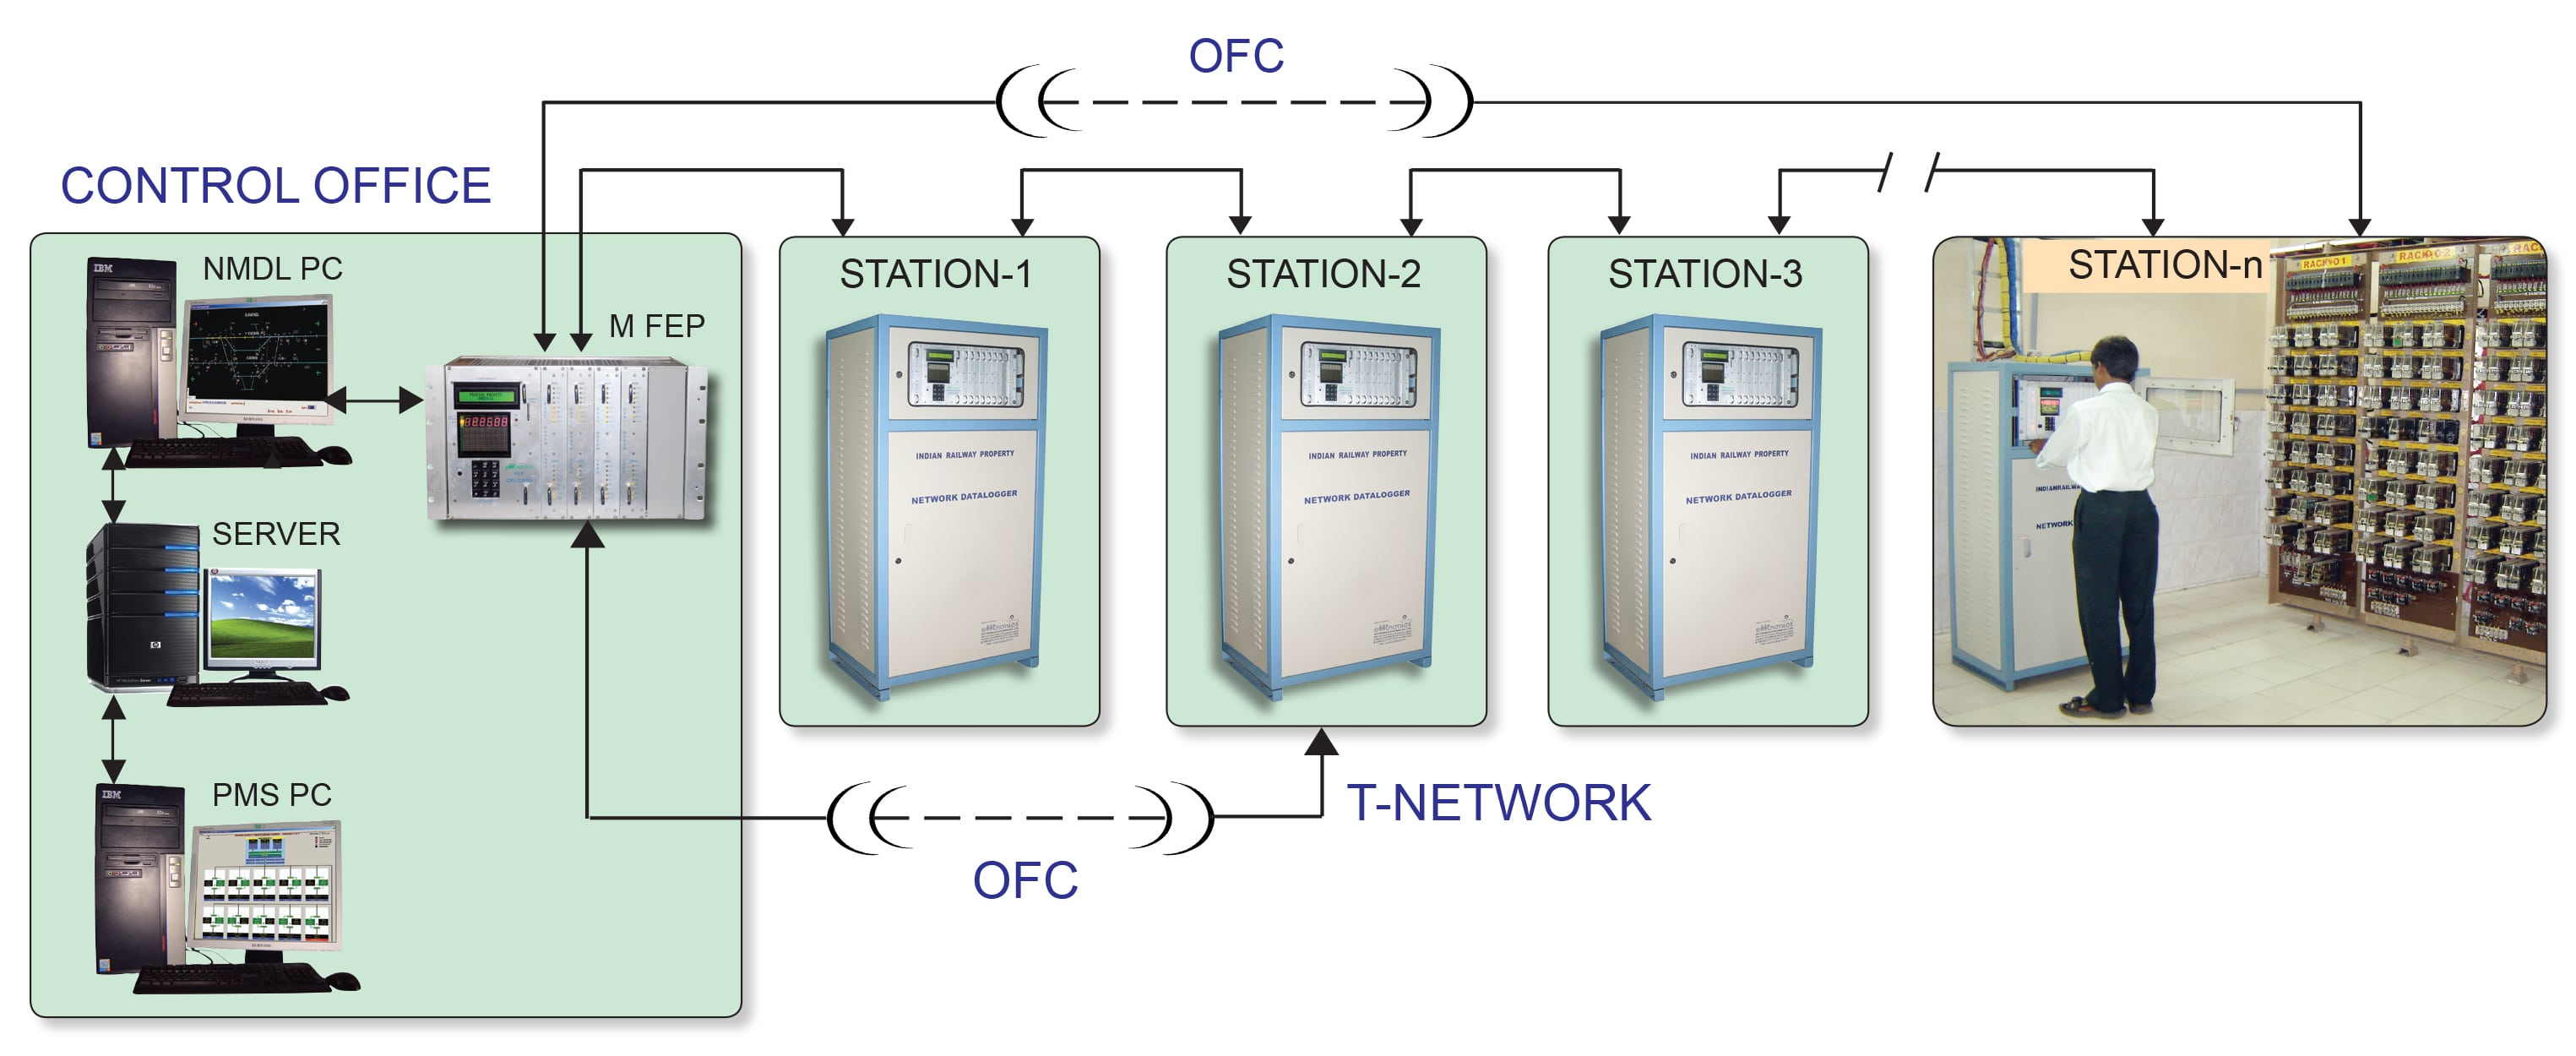 Data Logger System Efftronics Systems Pvt Ltd Acquisition And Logging Schematics Circuits Diagrams Network Management Of Loggers Nmdl